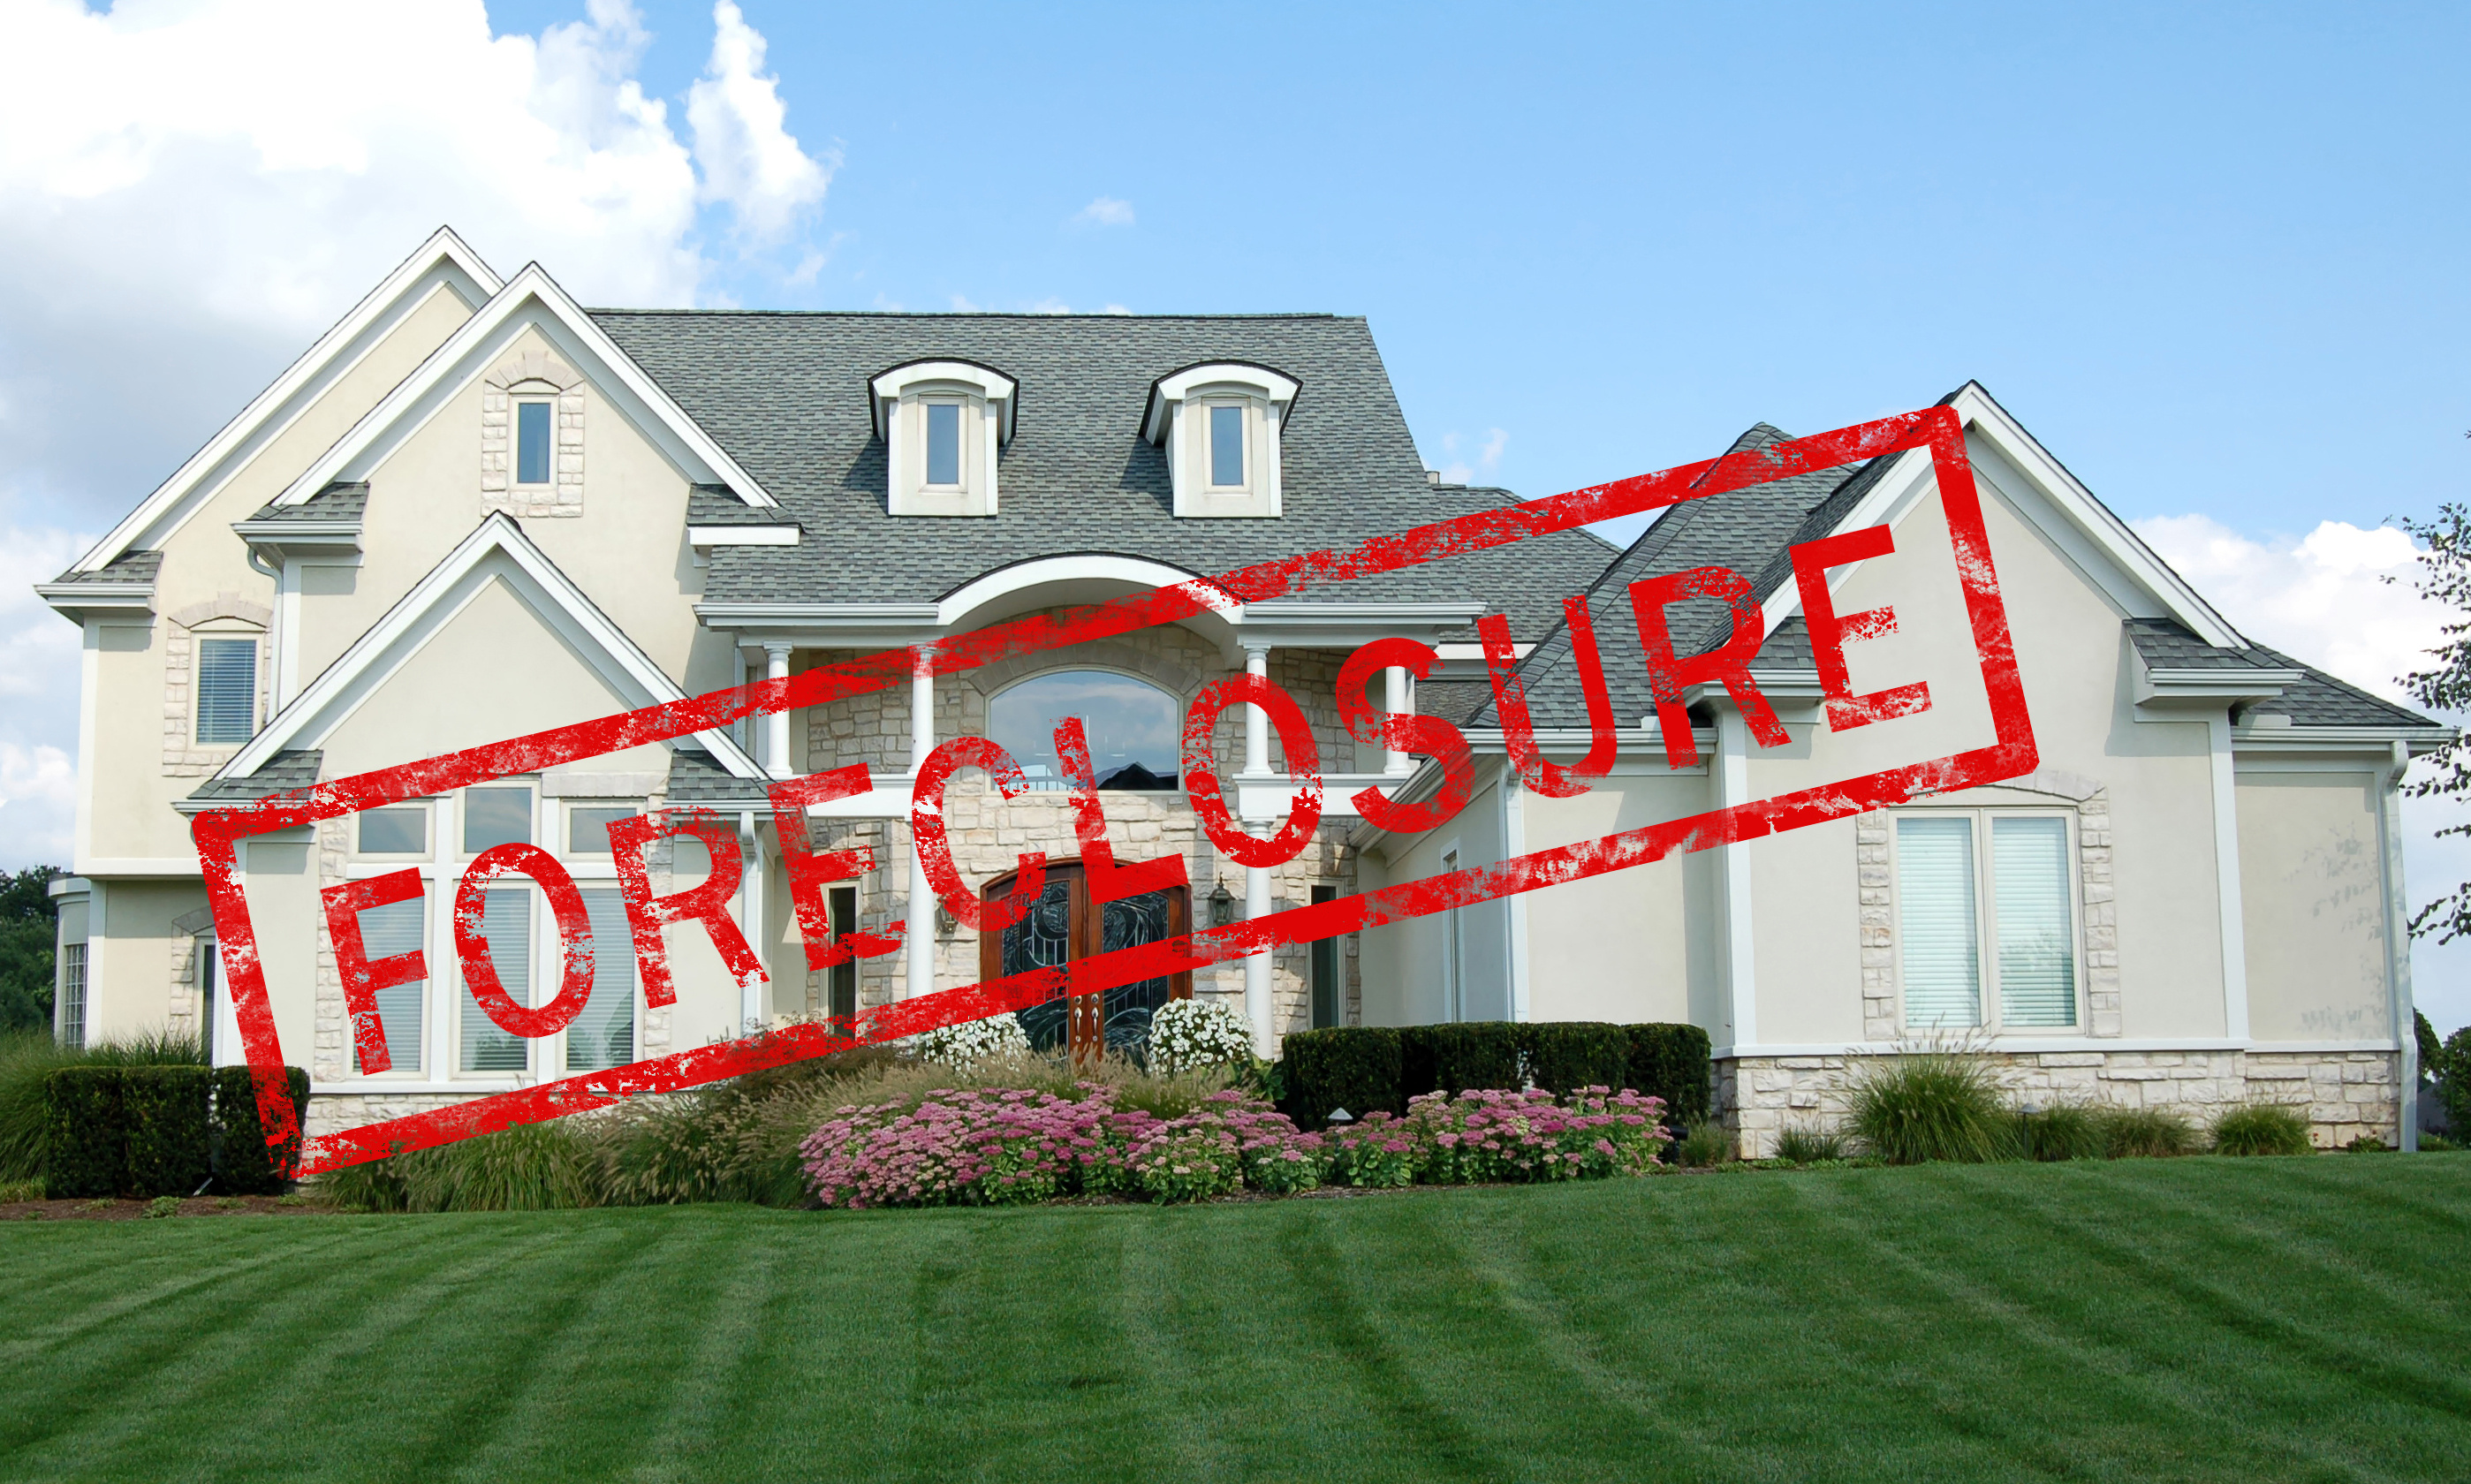 How Do You Buy a Foreclosure?